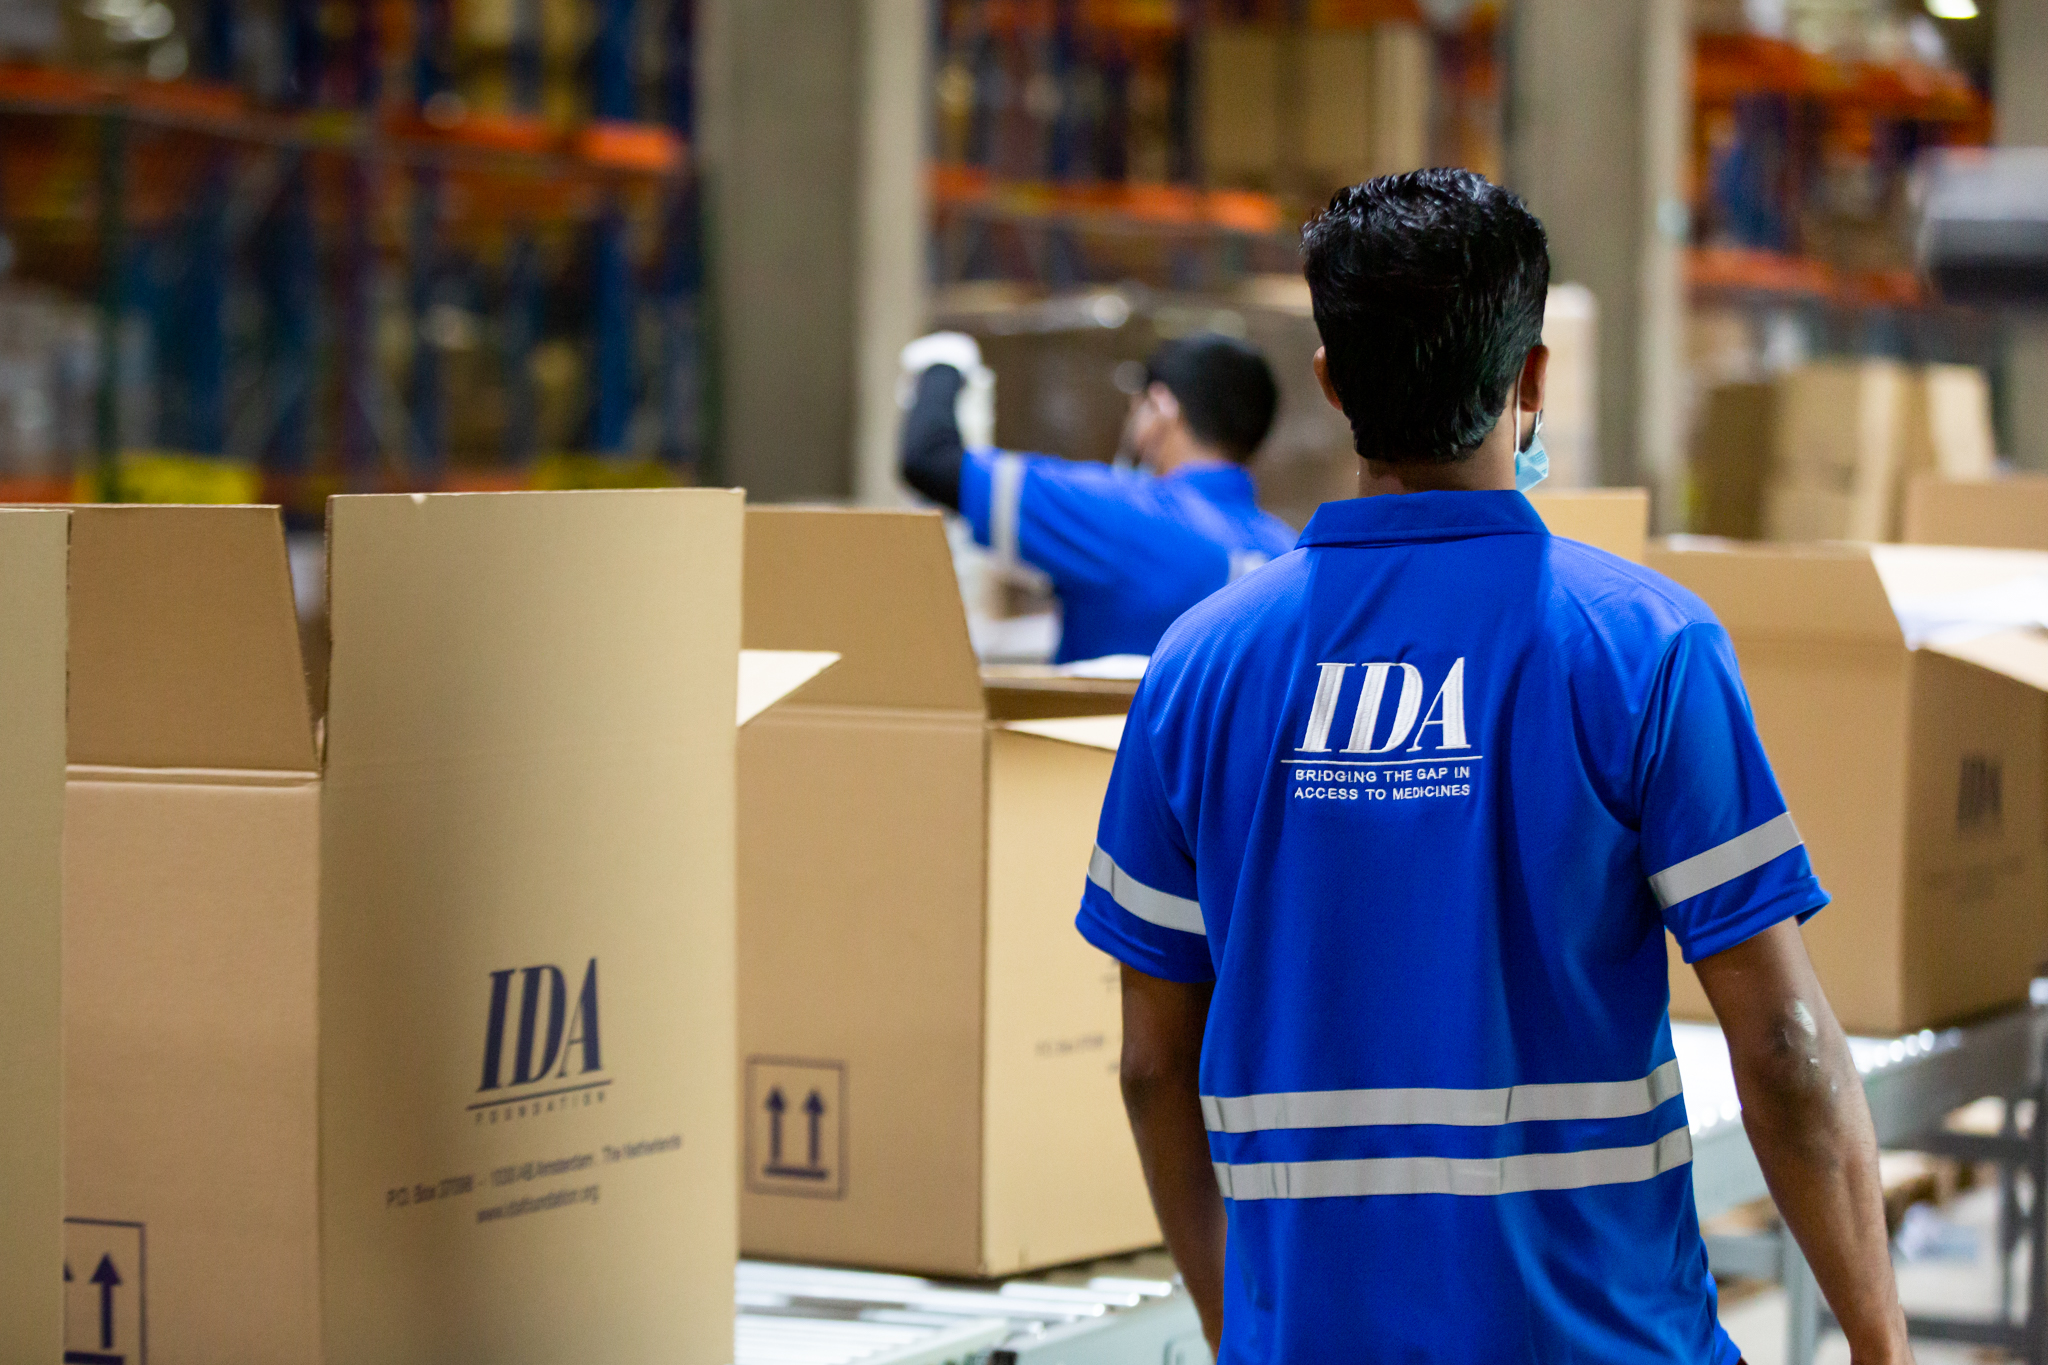 IDA supplies oxygen concentrators to LMICs